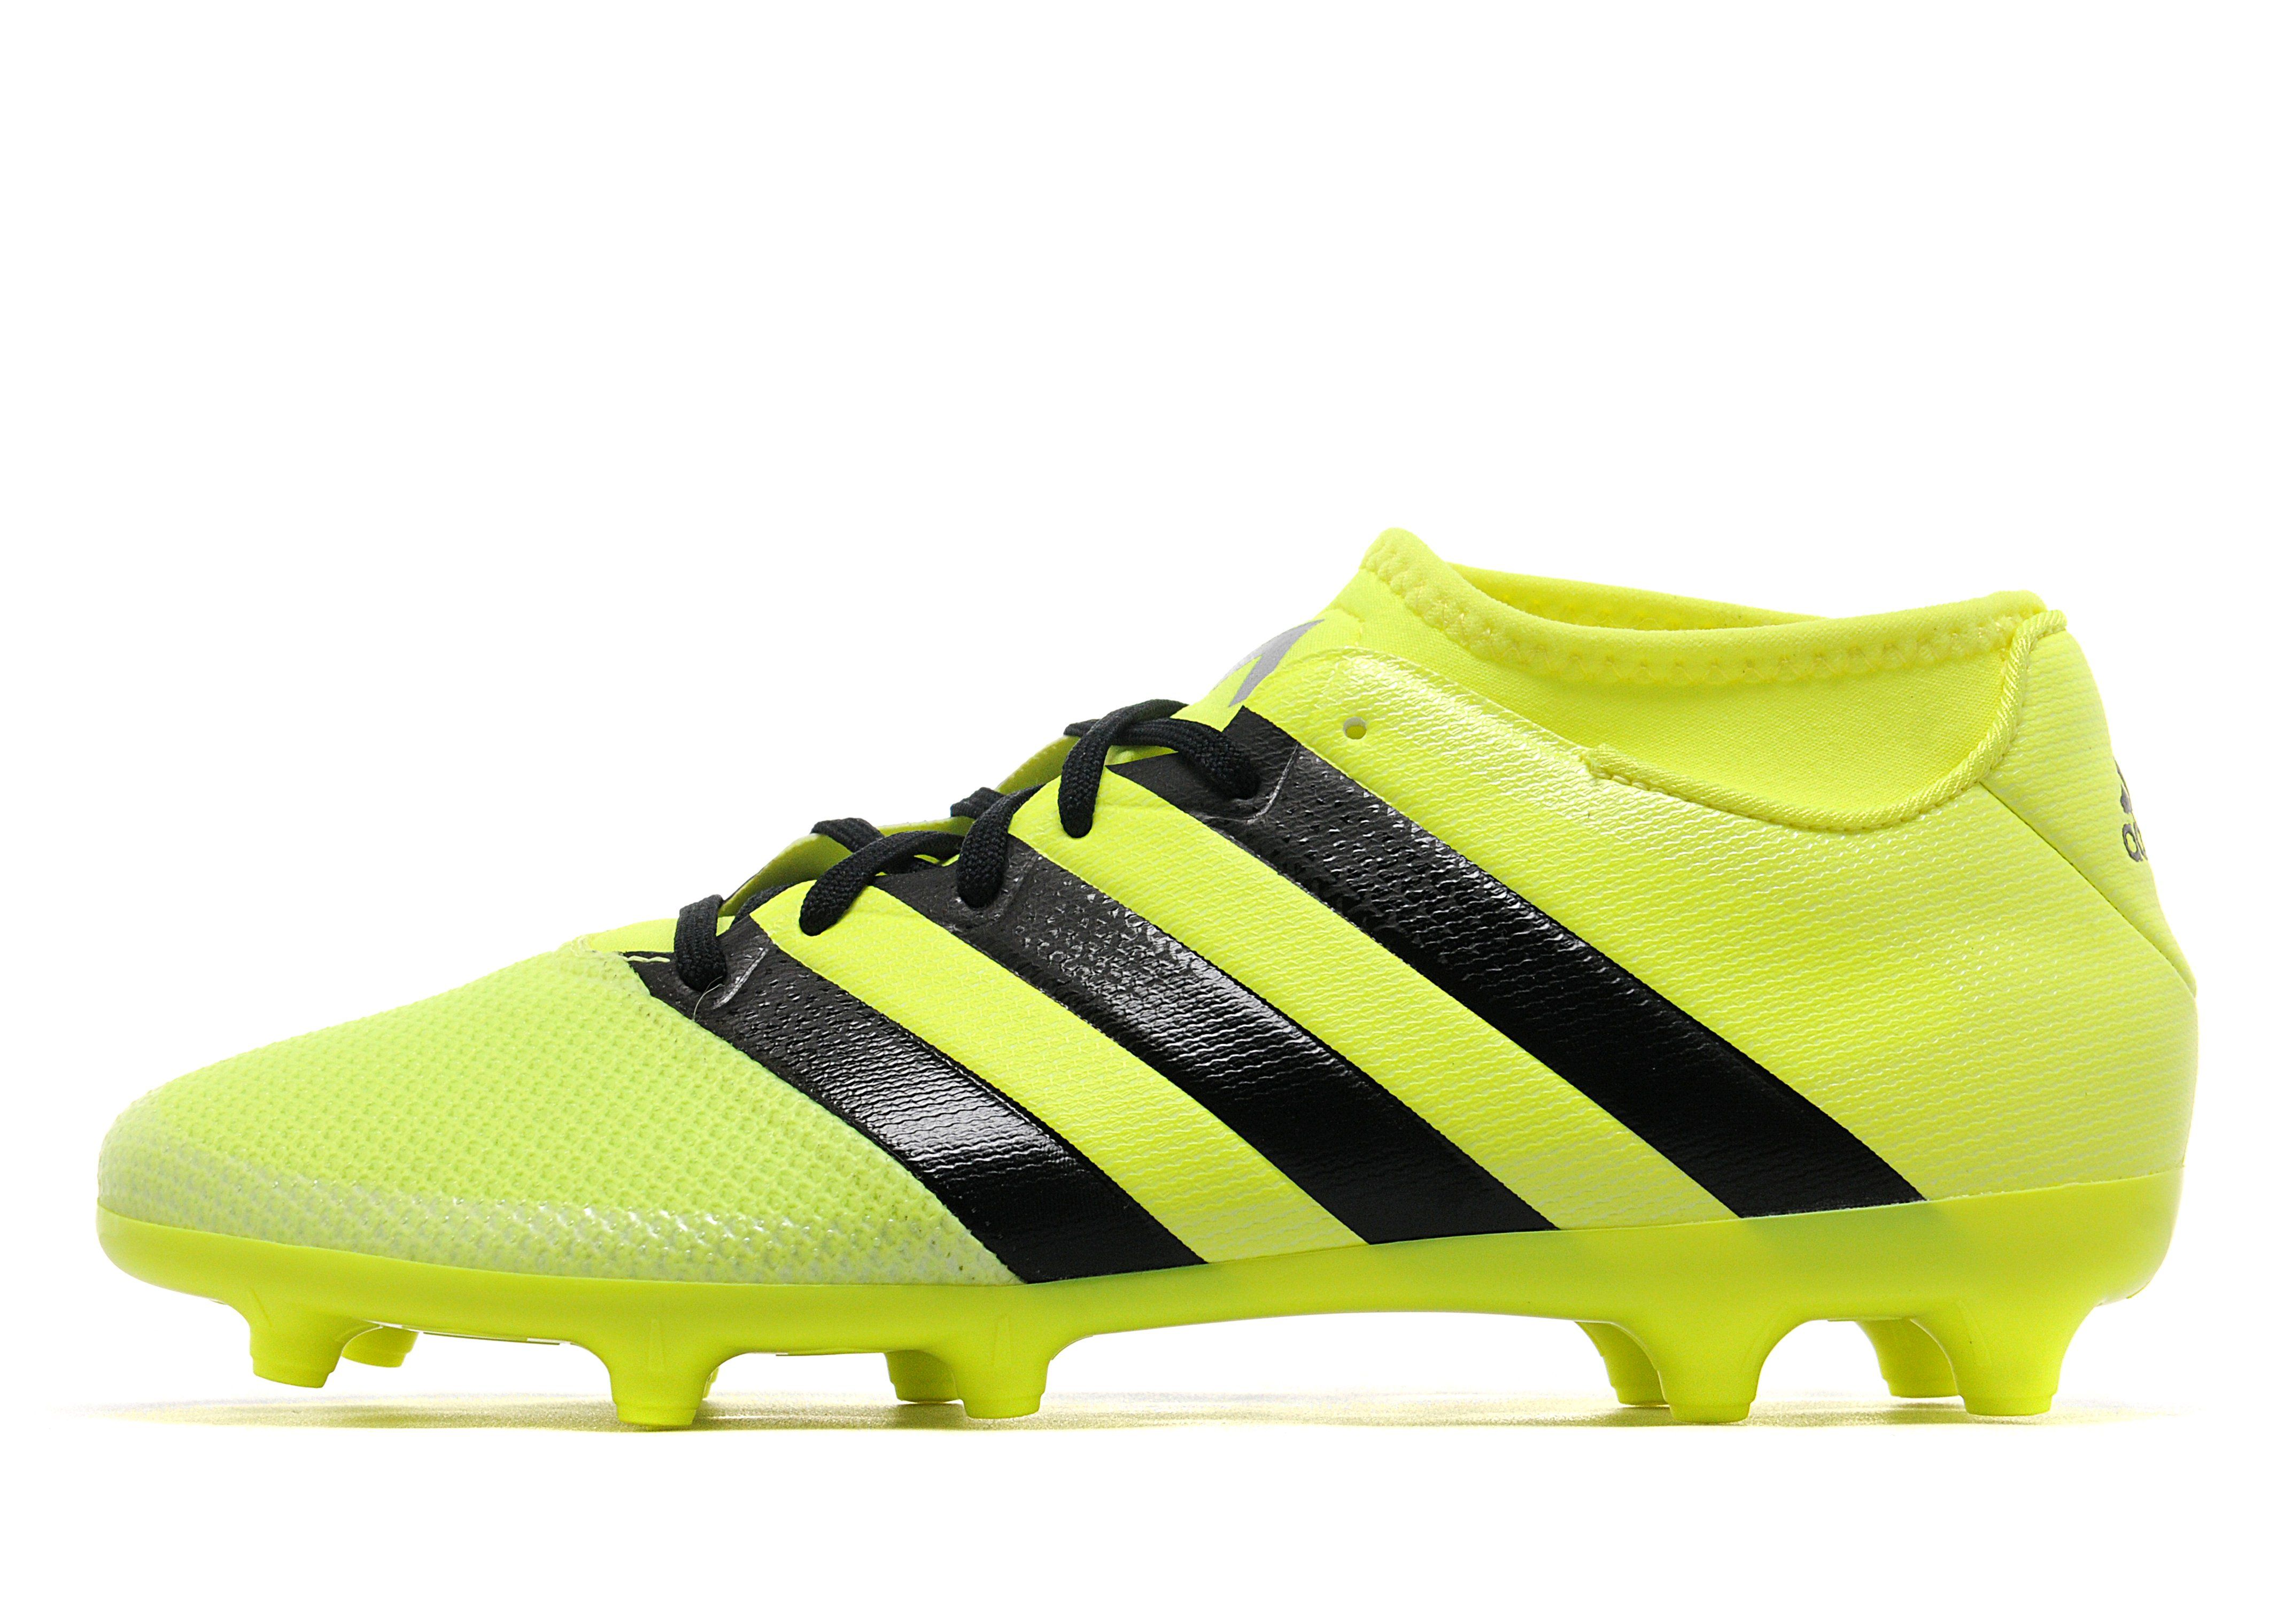 87bbd72810 adidas Ace 16.3 Primemesh Firm Ground